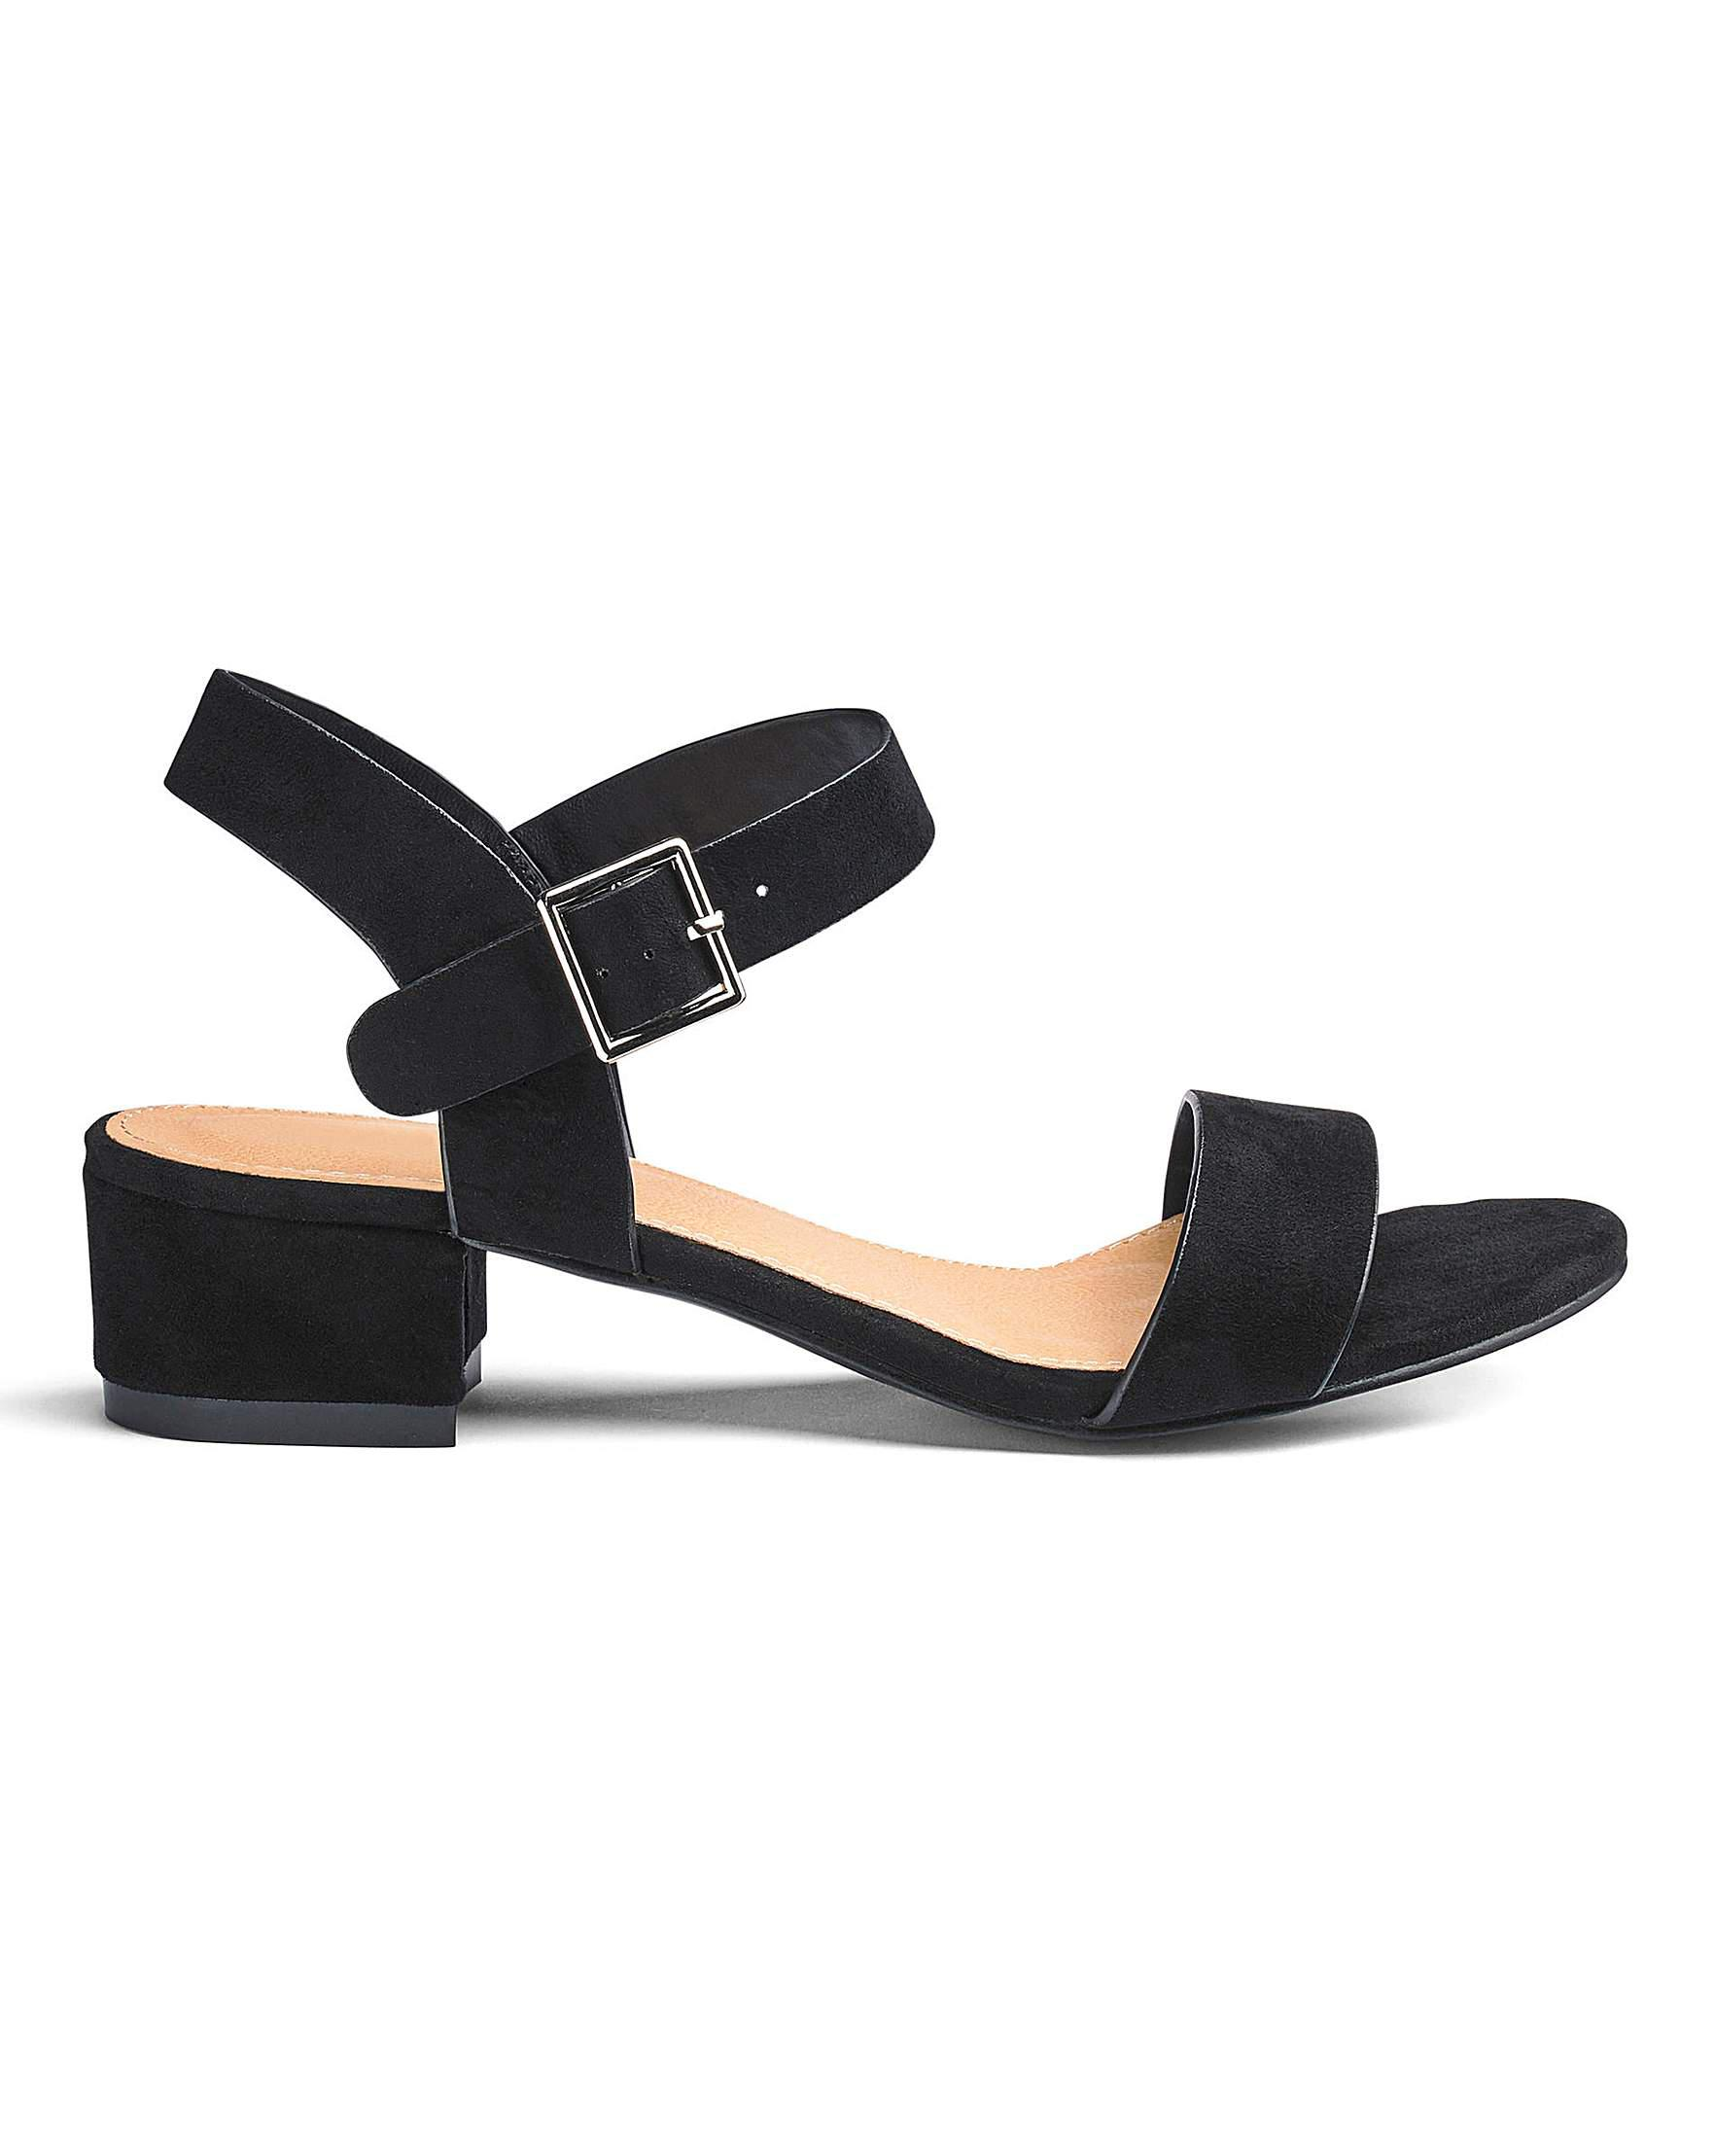 667c19d39bf05f Simply Be Frances Block Heel Sandals Wide Fit in Black - Lyst